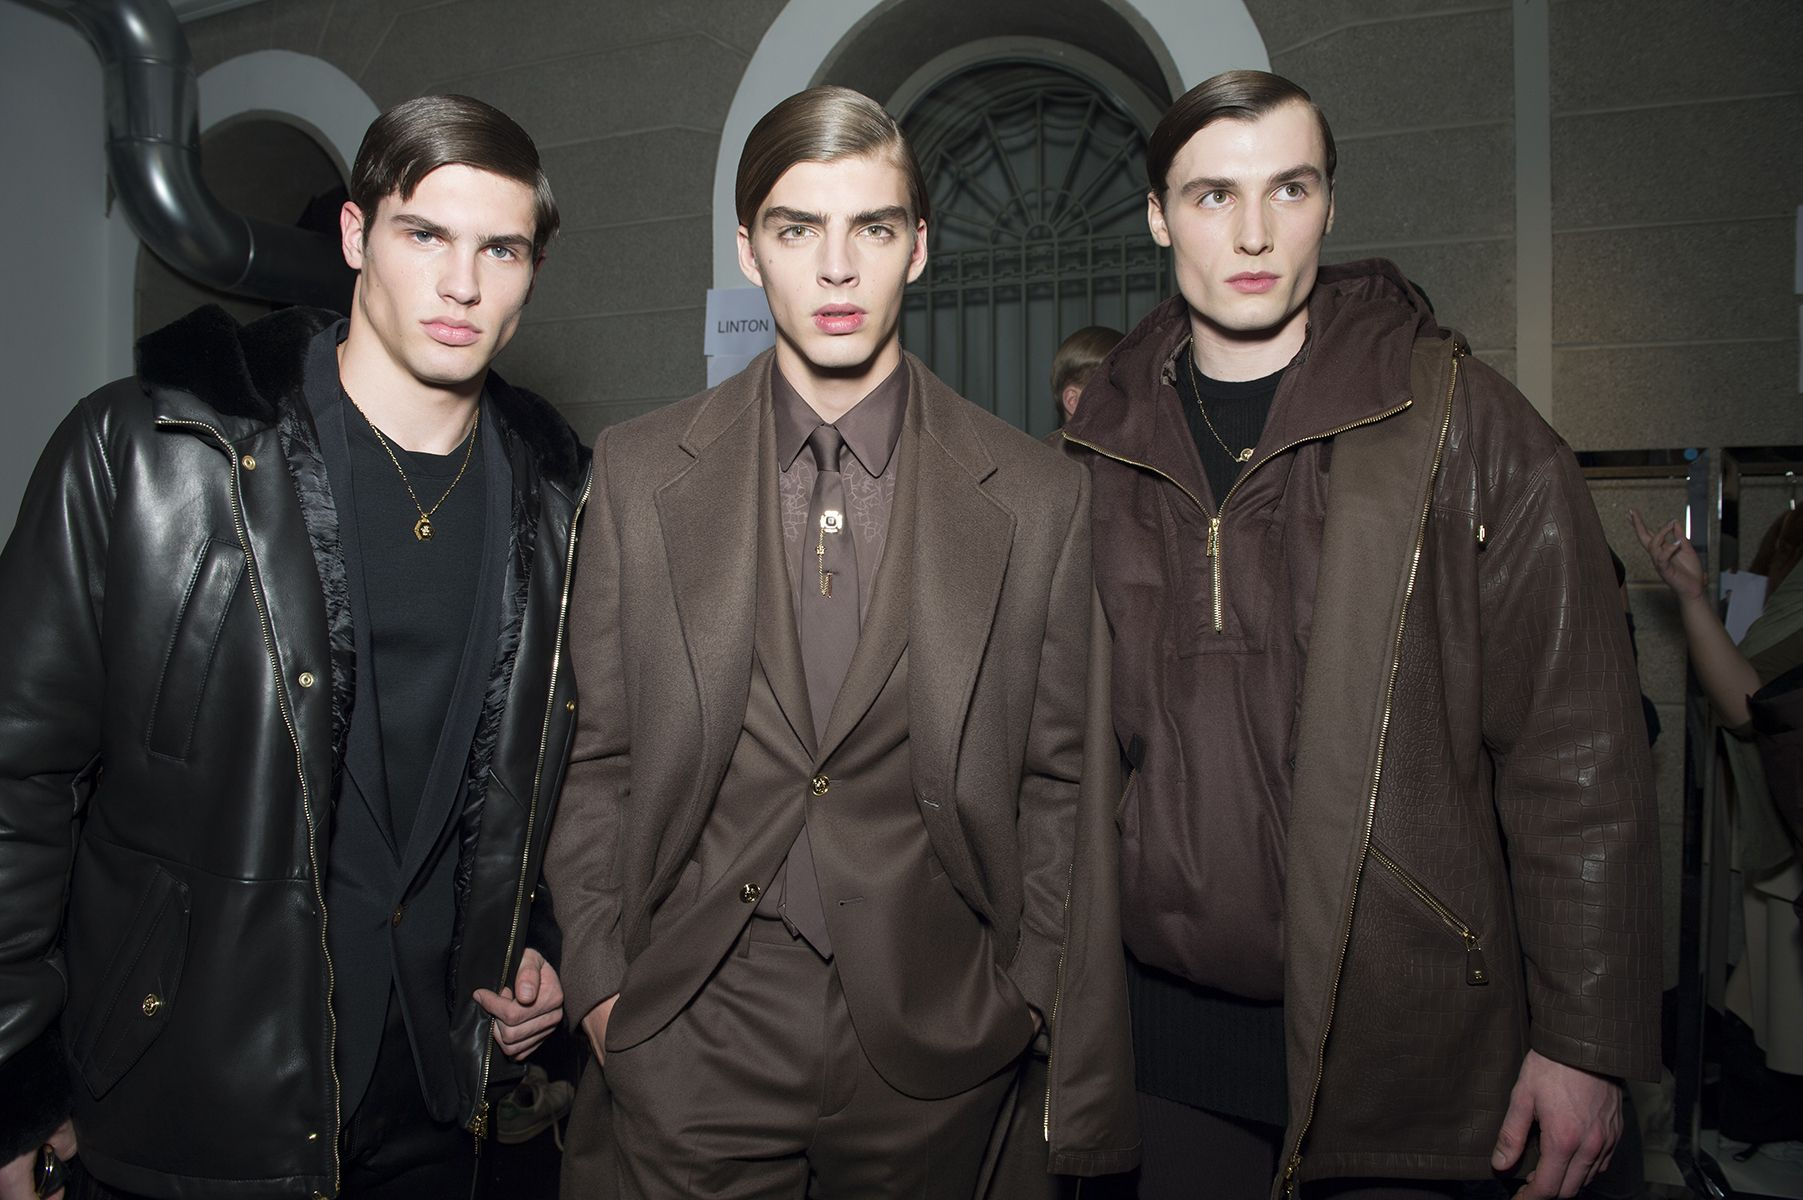 Backstage at the #Versace Men's Fall/Winter 2015-16 fashion show. #VersaceMenswear